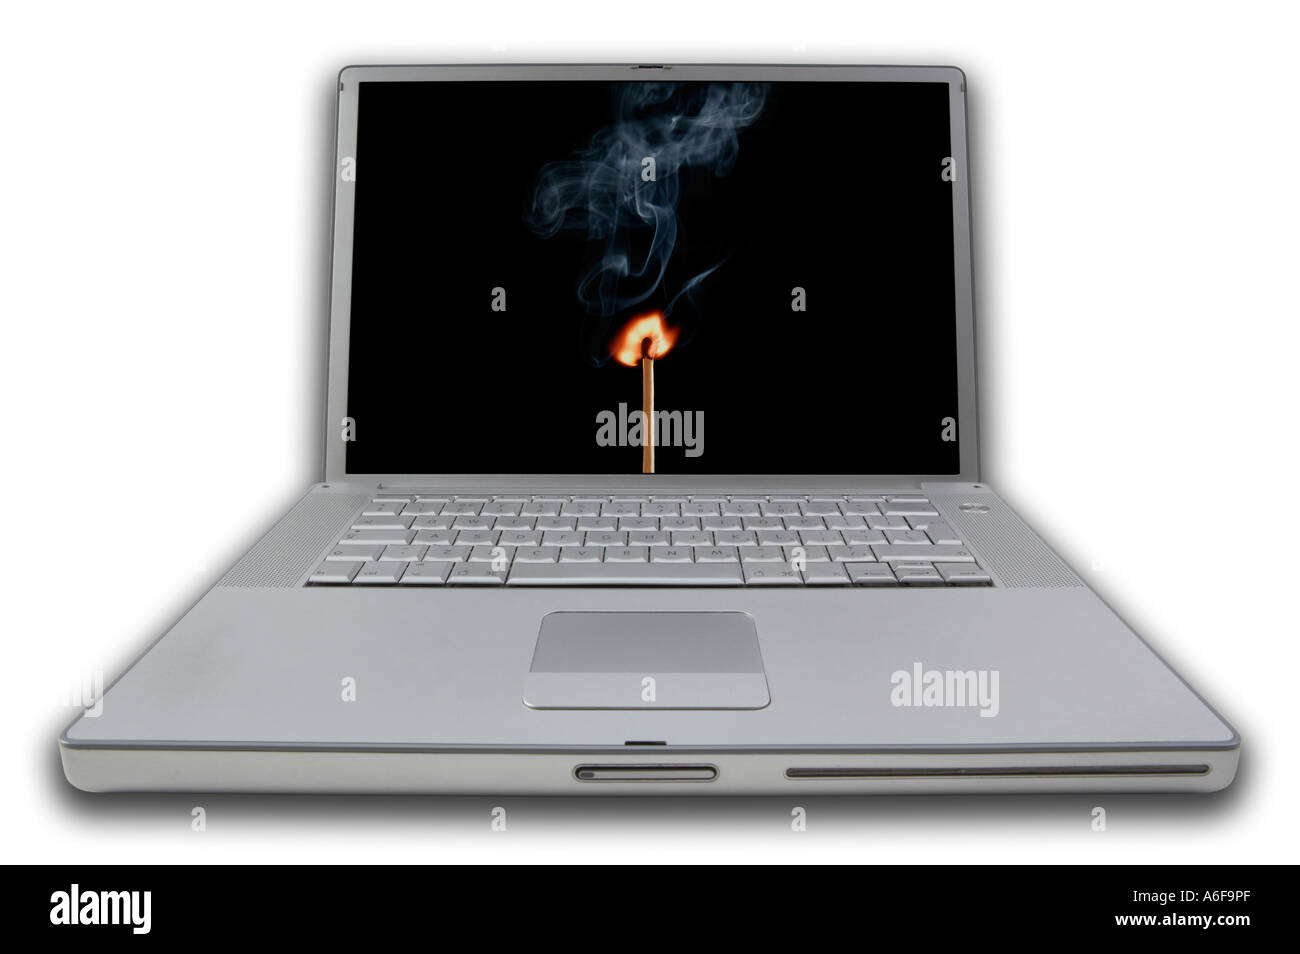 LAP TOP NOTE BOOK COMPUTER DISPLAYING IMAGE OF BURNING MATCH AND SMOKE ON SCREEN - Stock Image